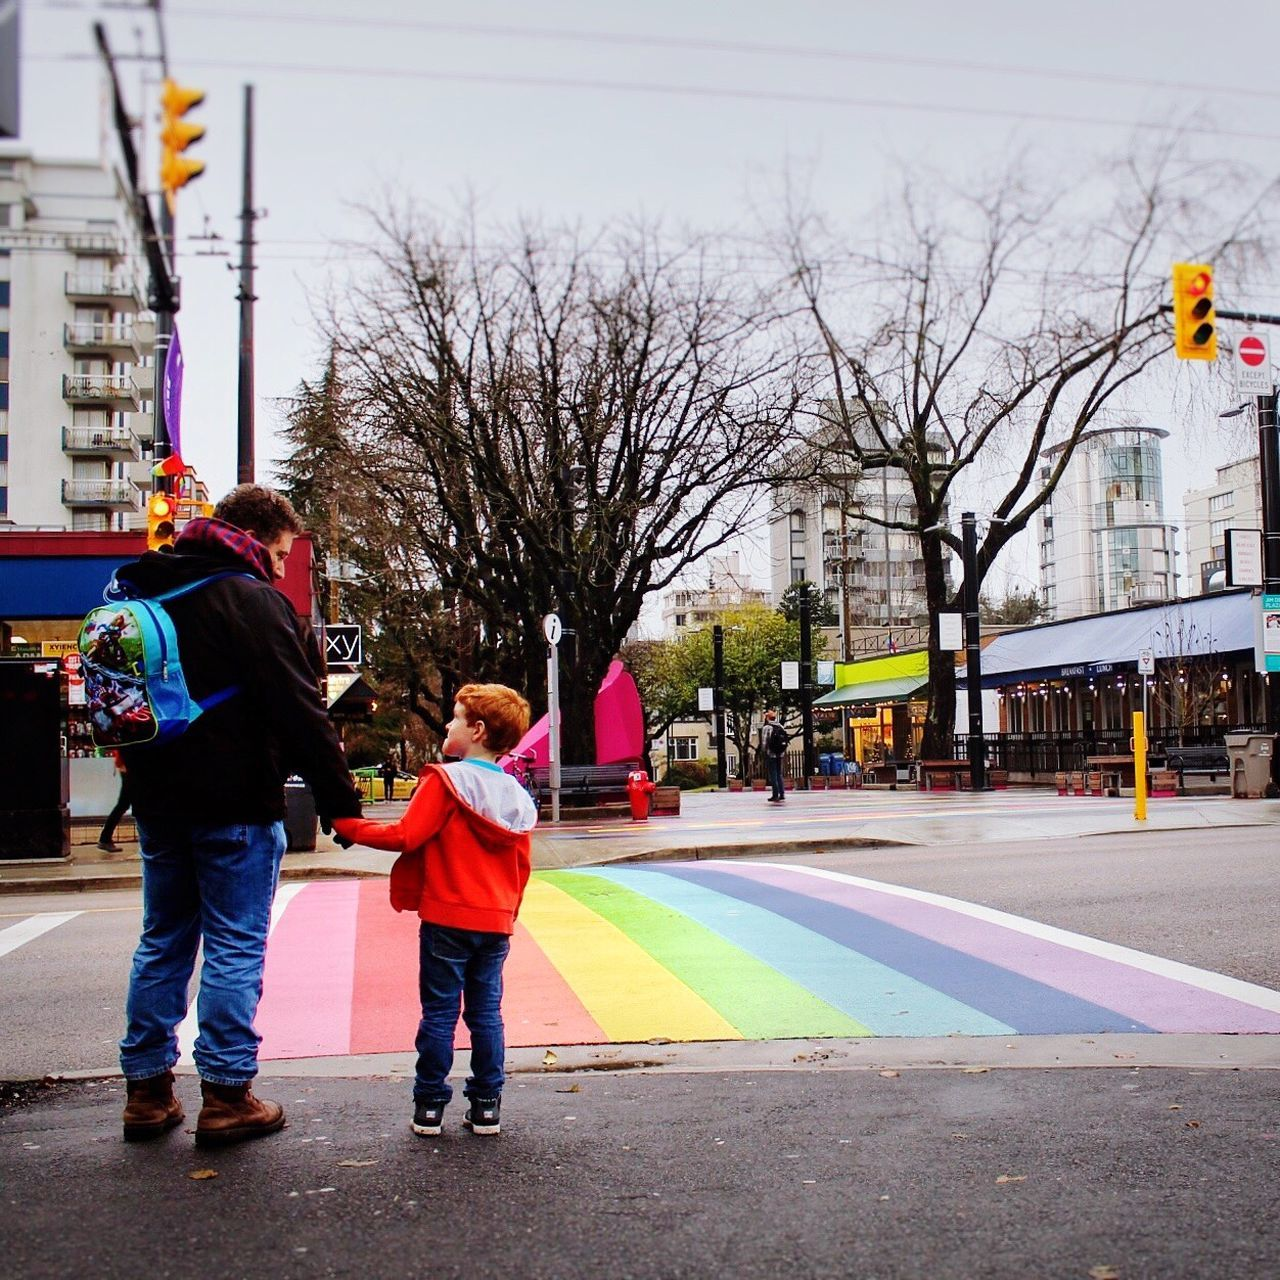 Gay Pride 🏳️🌈 sSafe FFreedom vVisibility hHuman MMan cChild CCrosswalk sStreetphotography LLove tTogetherness tTwo People bBuilding Exterior CCity sSky oOutdoors The Street Photographer - 2017 EyeEm Awards